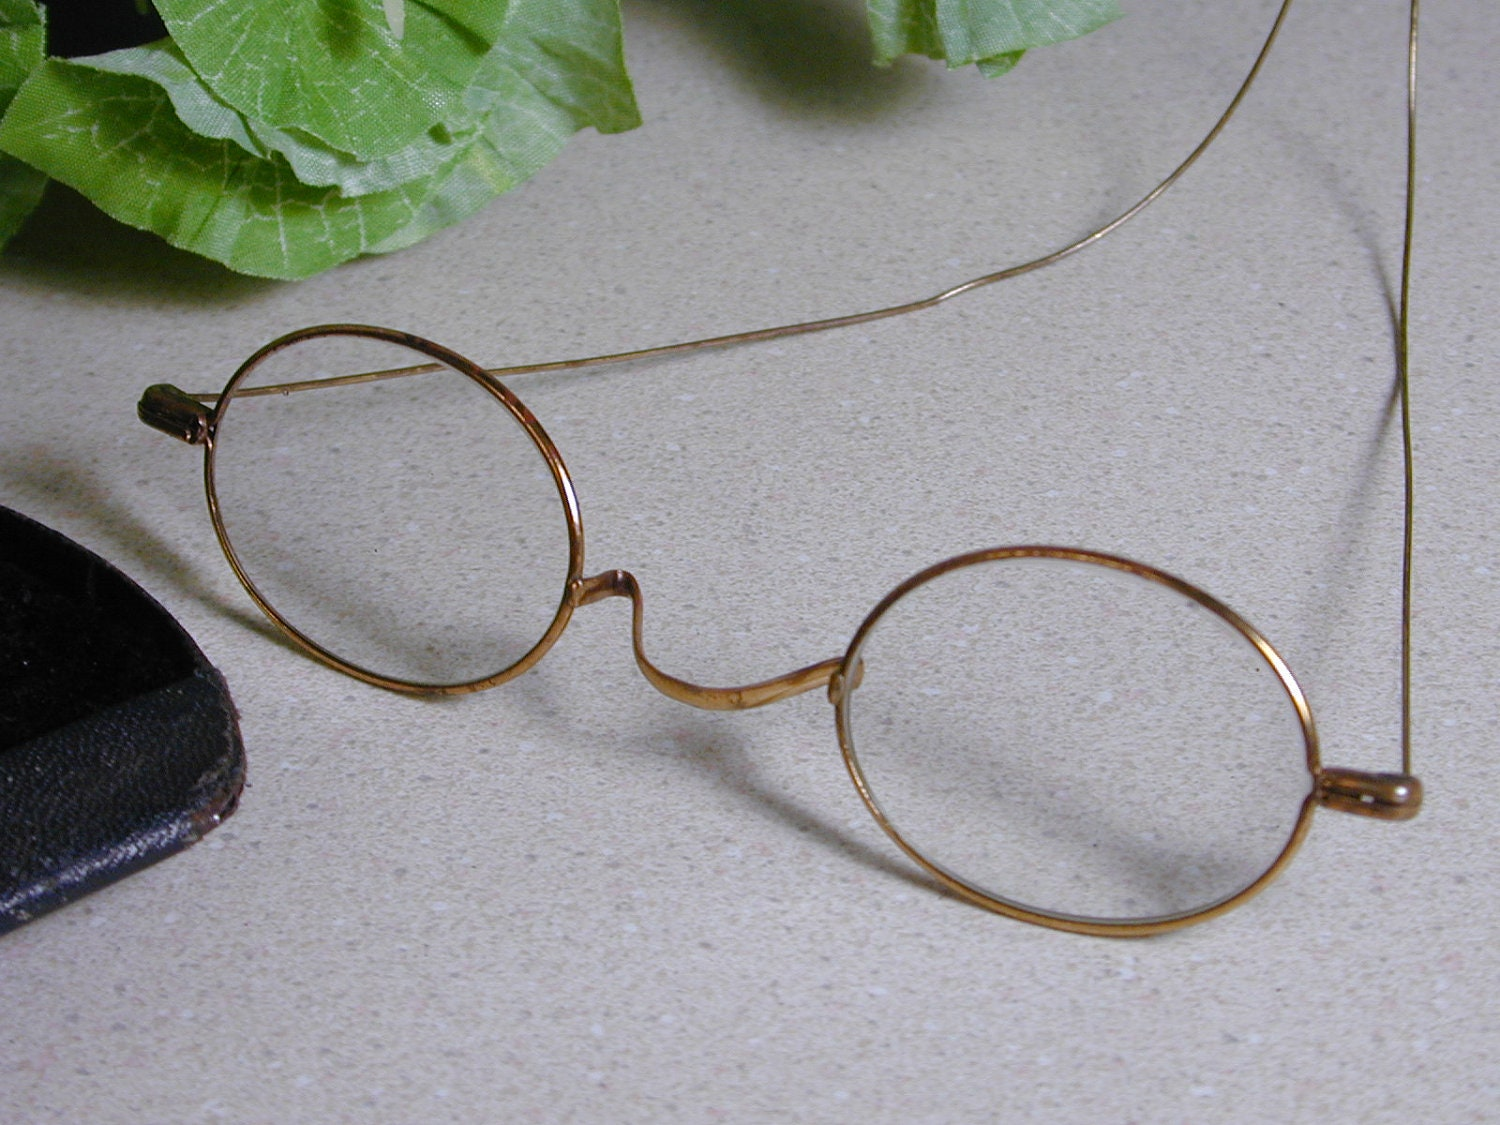 Wire Frame Glasses Vintage : Antique Wire Frame Eyeglasses with Case